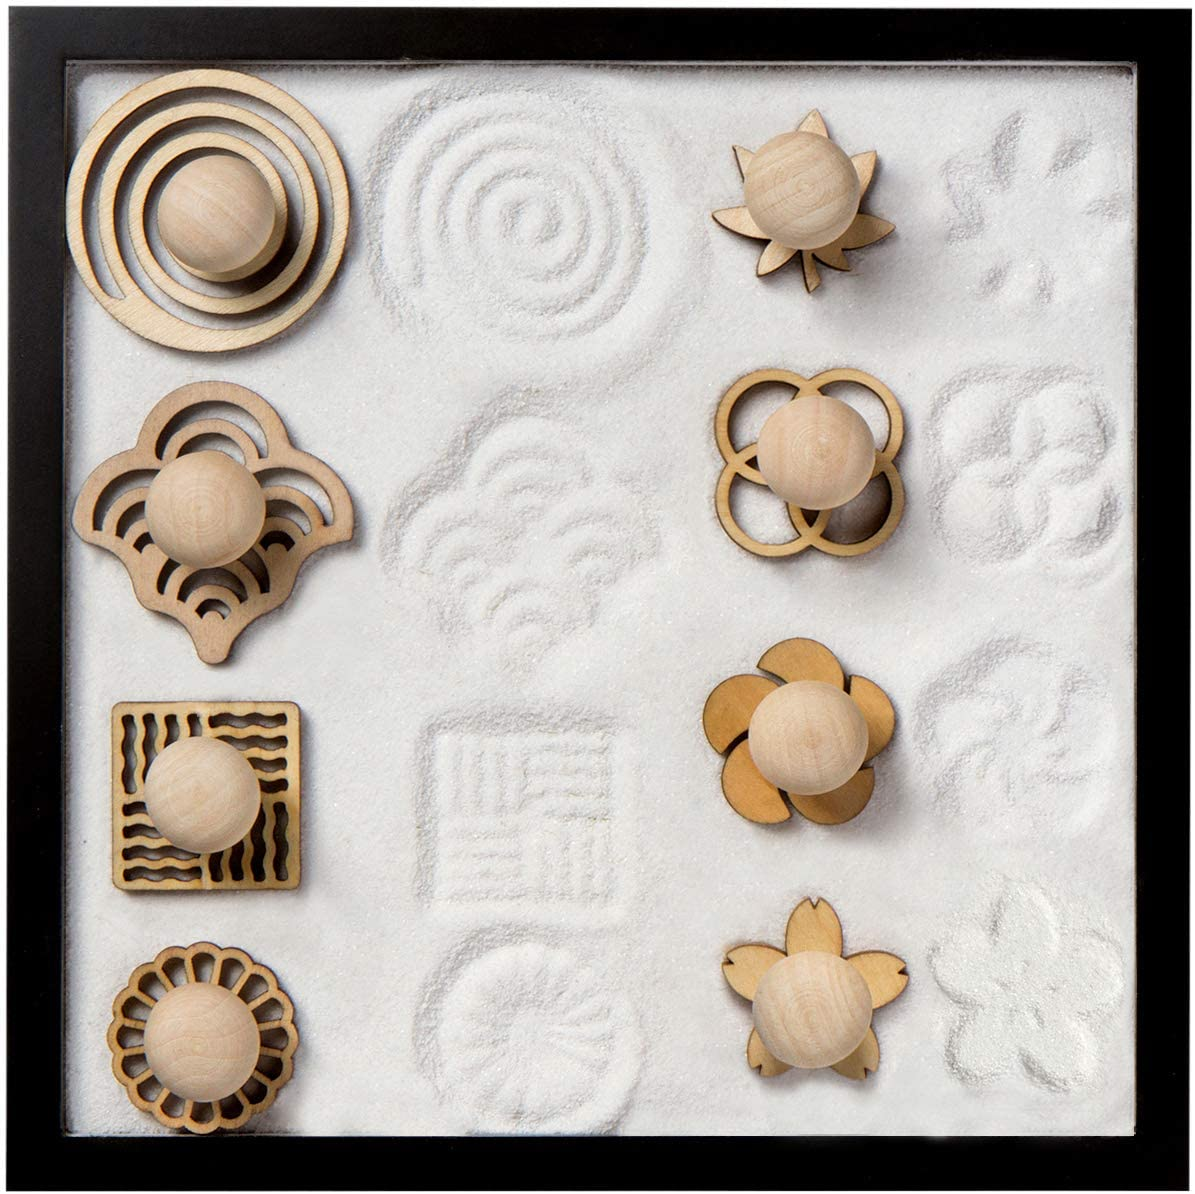 COCORO Mini Sand Stamps for Mini Zen Garden Patterns Include Swirl, Ocean Waves, Parallel Crosses, Rings, Chrysanthemum, Plum Blossom, Red Leaf, Cherry Blossom